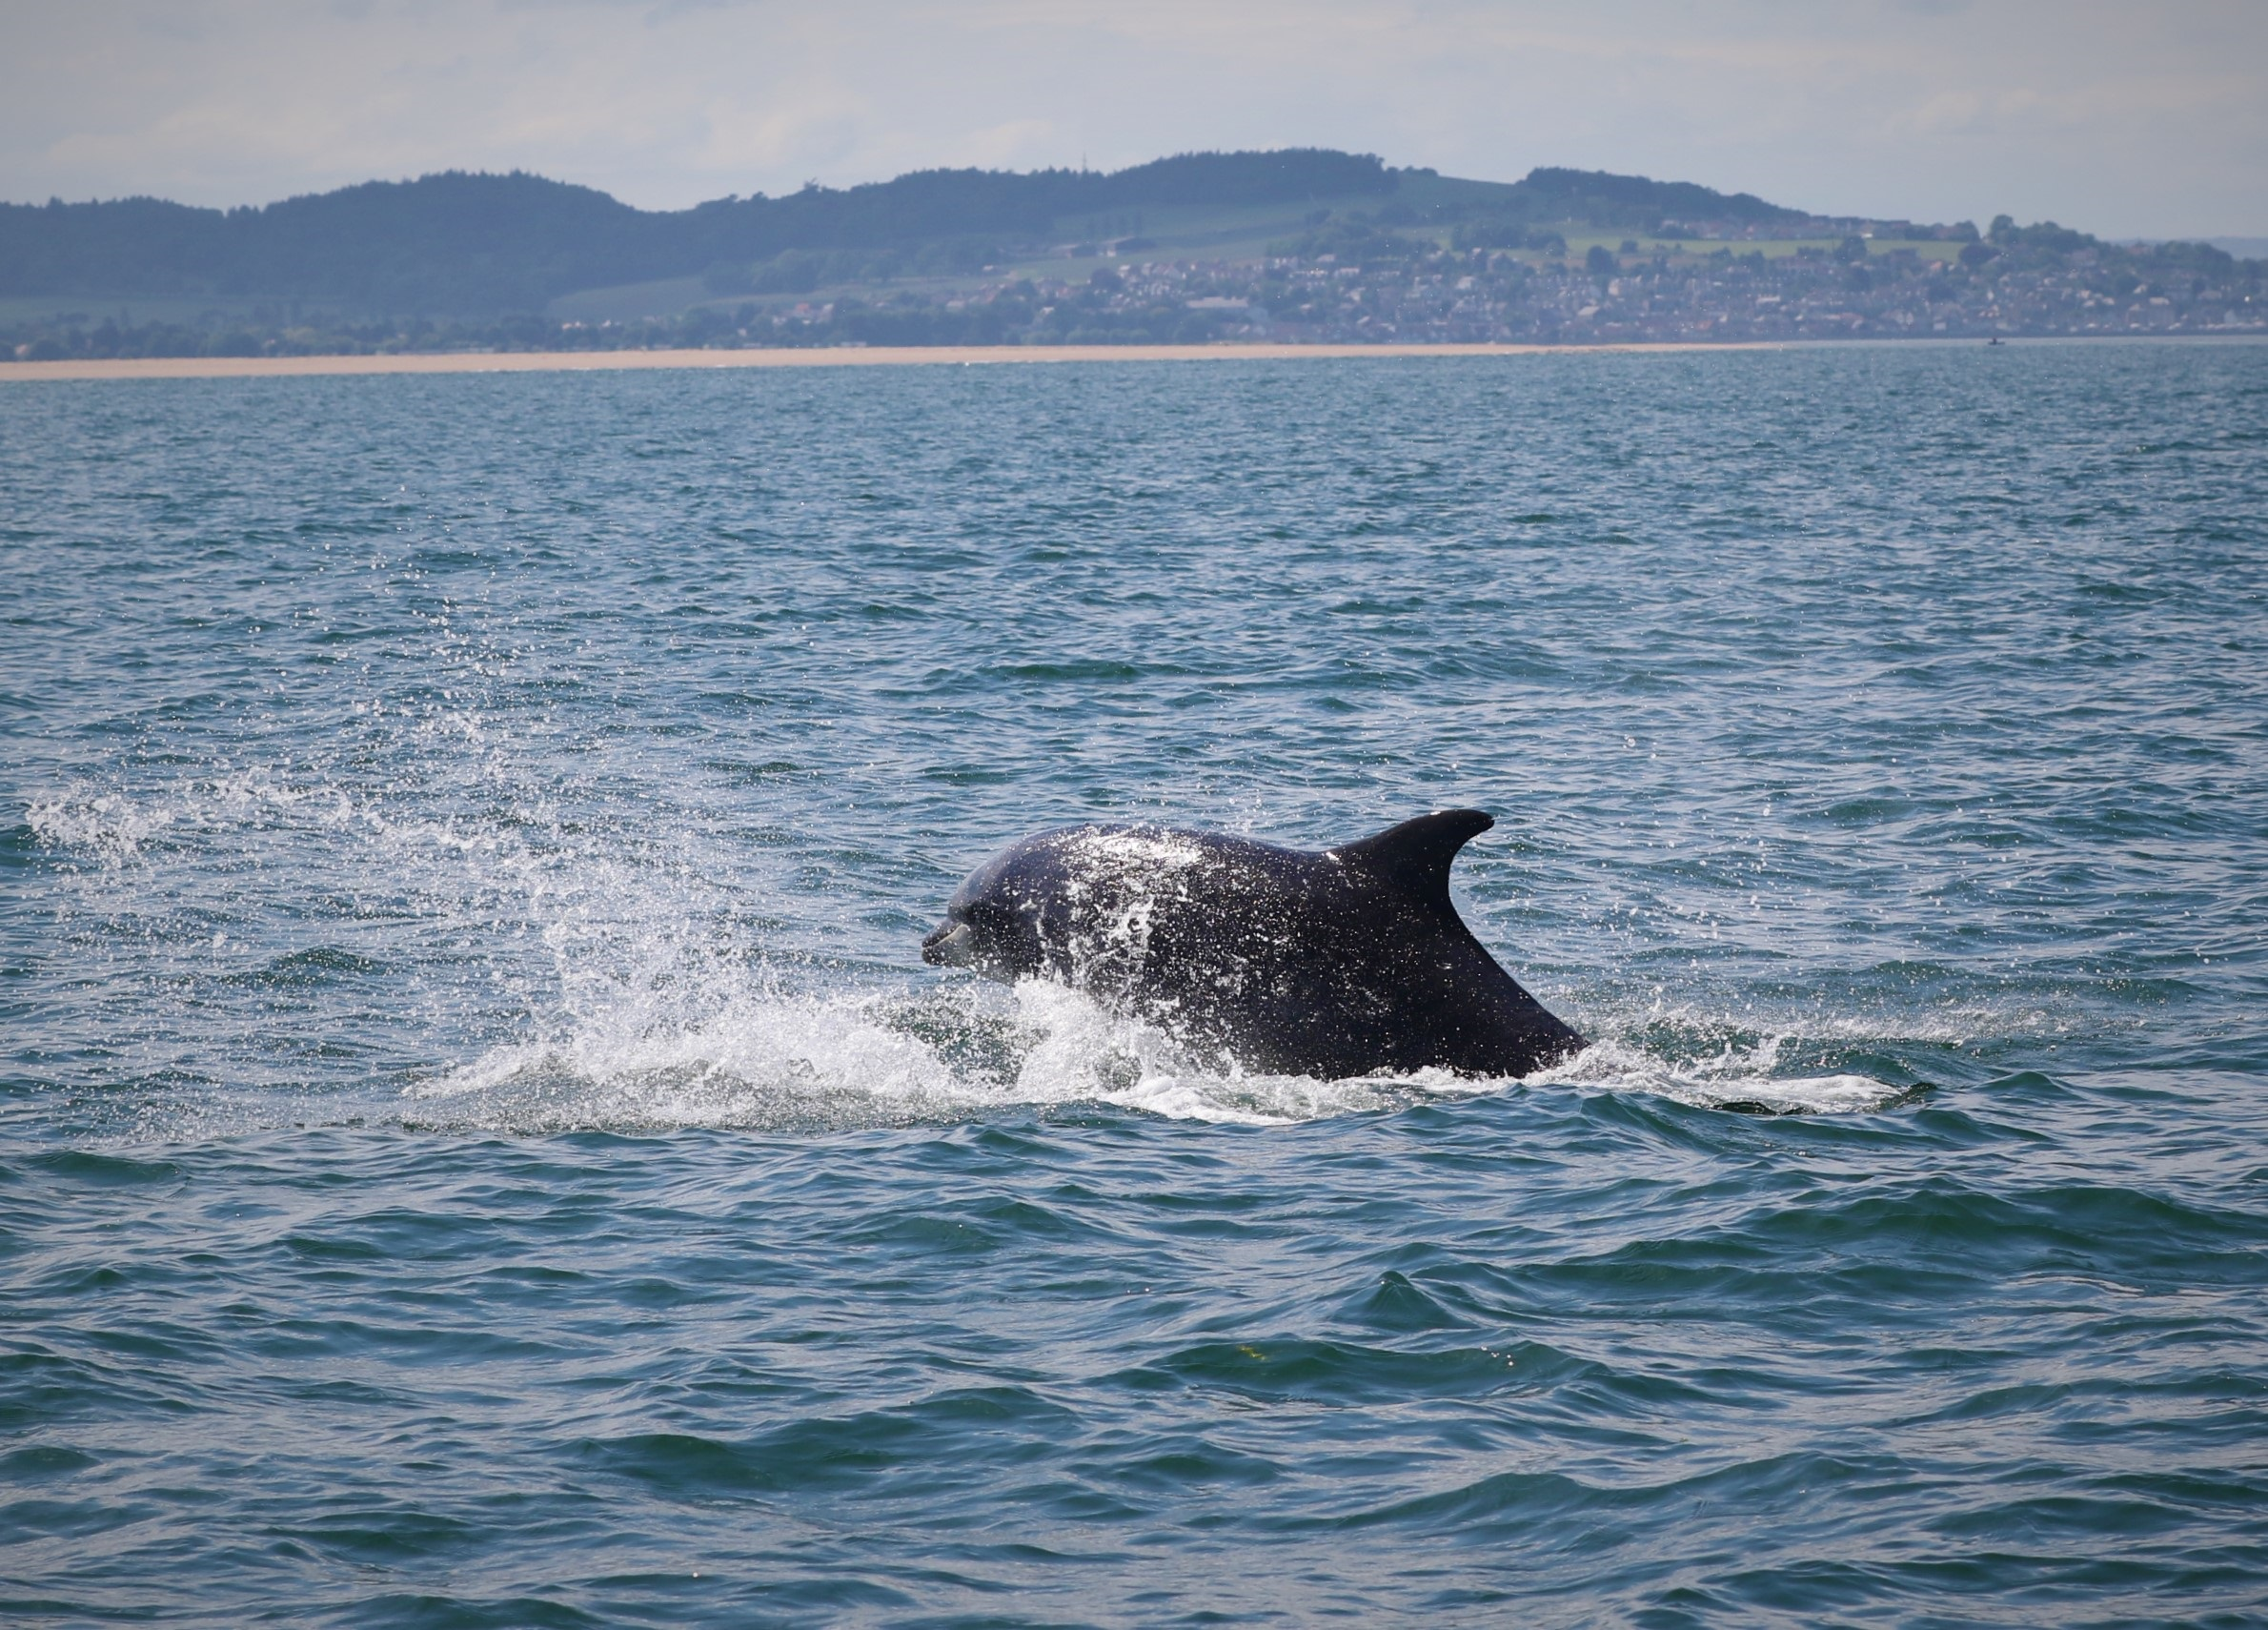 One of the dolphins seen at Tayport.